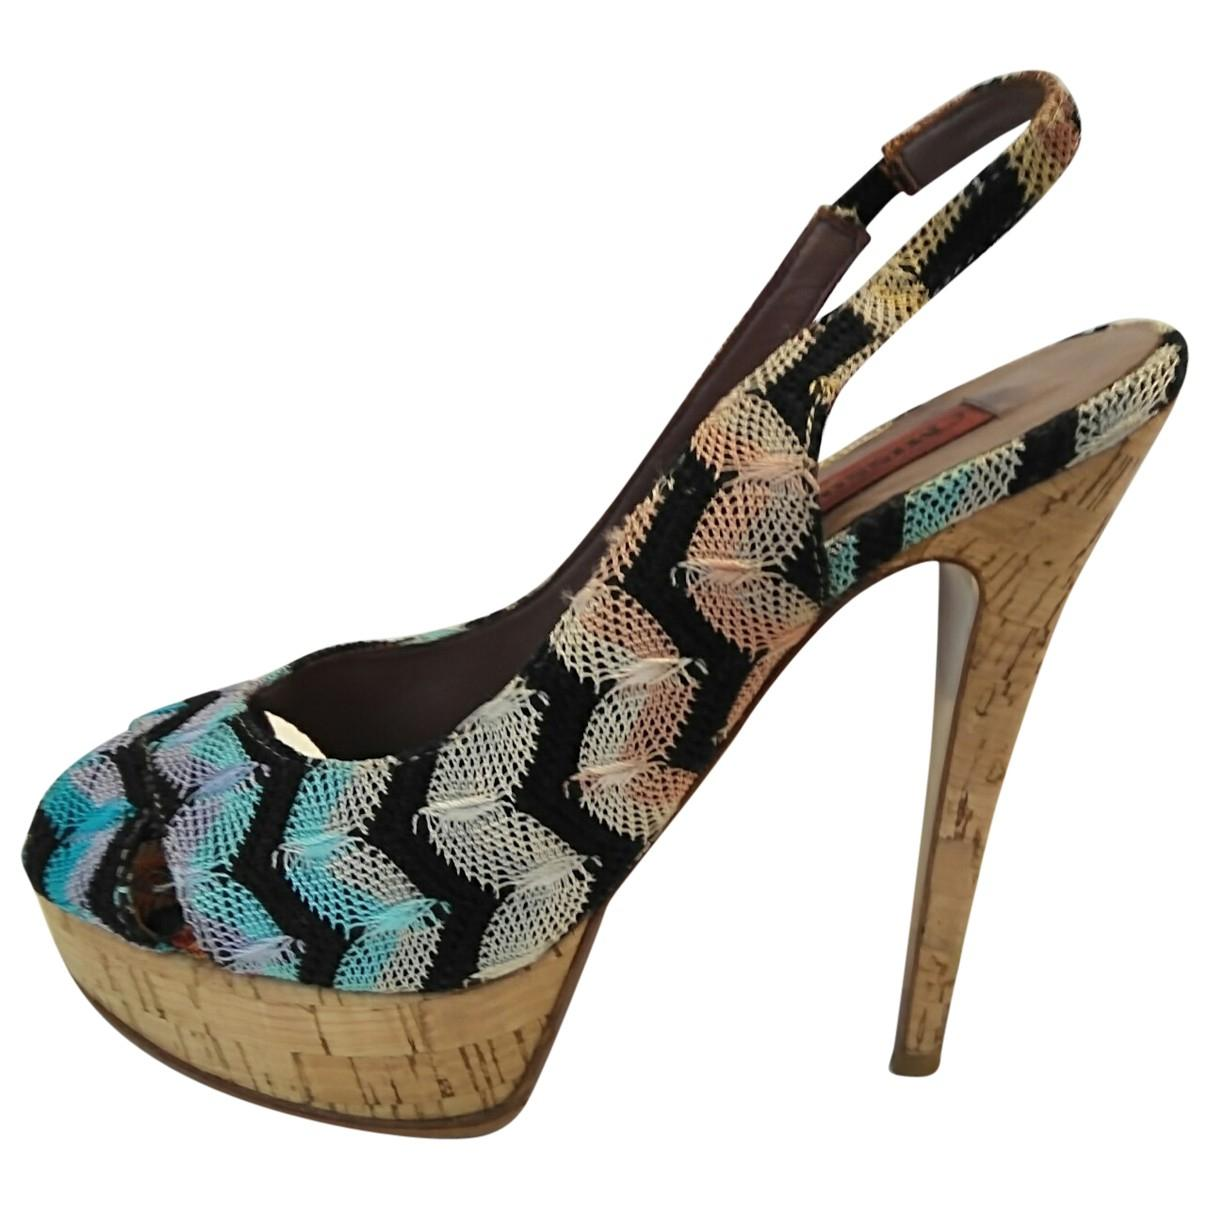 Pre-owned - Cloth heels Missoni Outlet Fake Cheap Price Store h3hCd